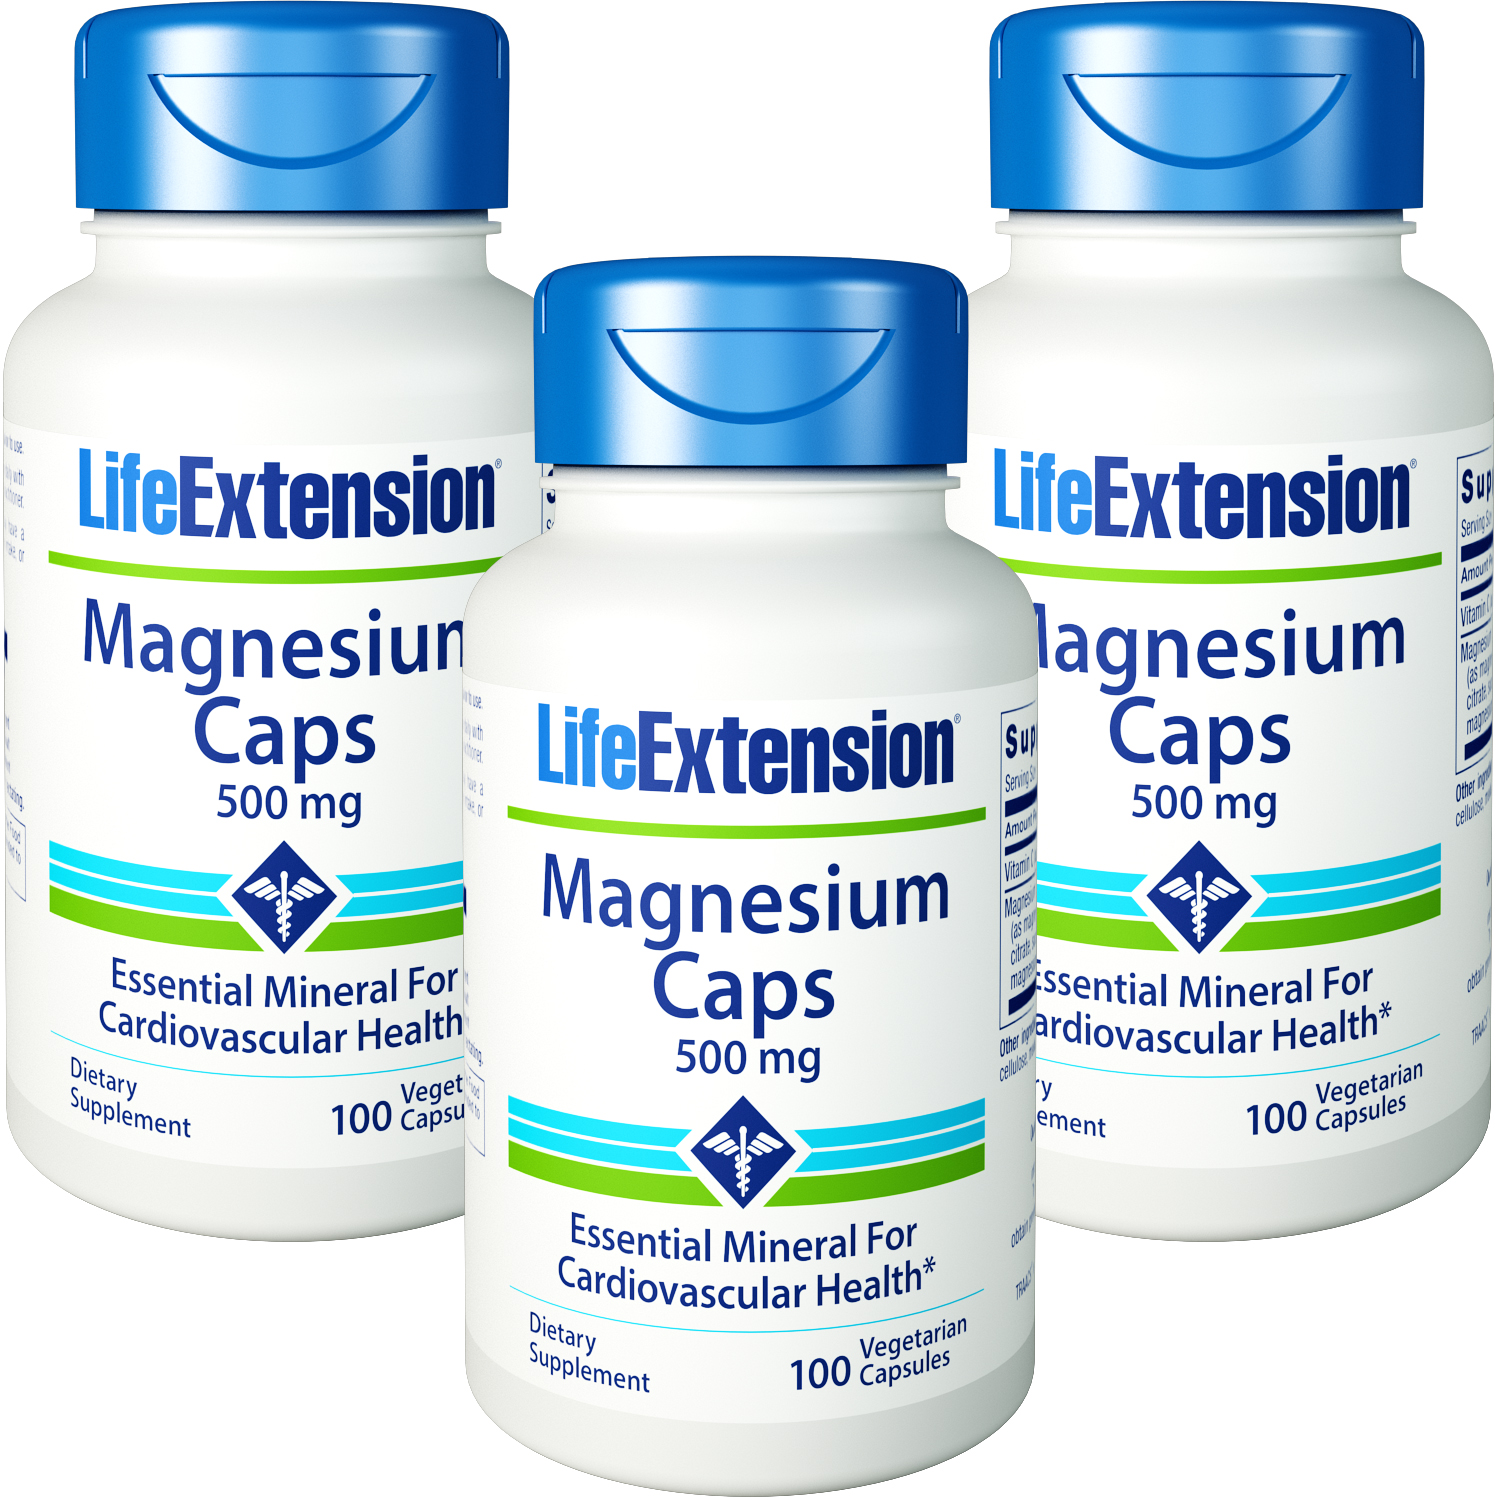 Life Extension Magnesium Caps 500 mg 100 Vegetarian Capsules 3 Bottles